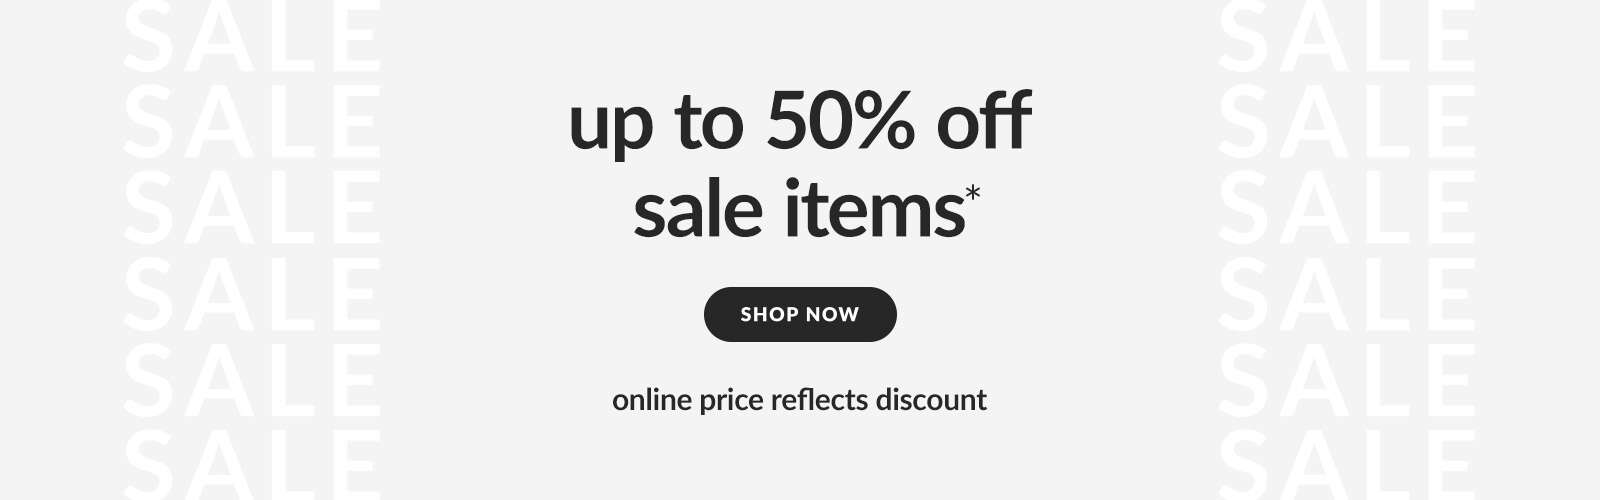 'up to 50% off sale items